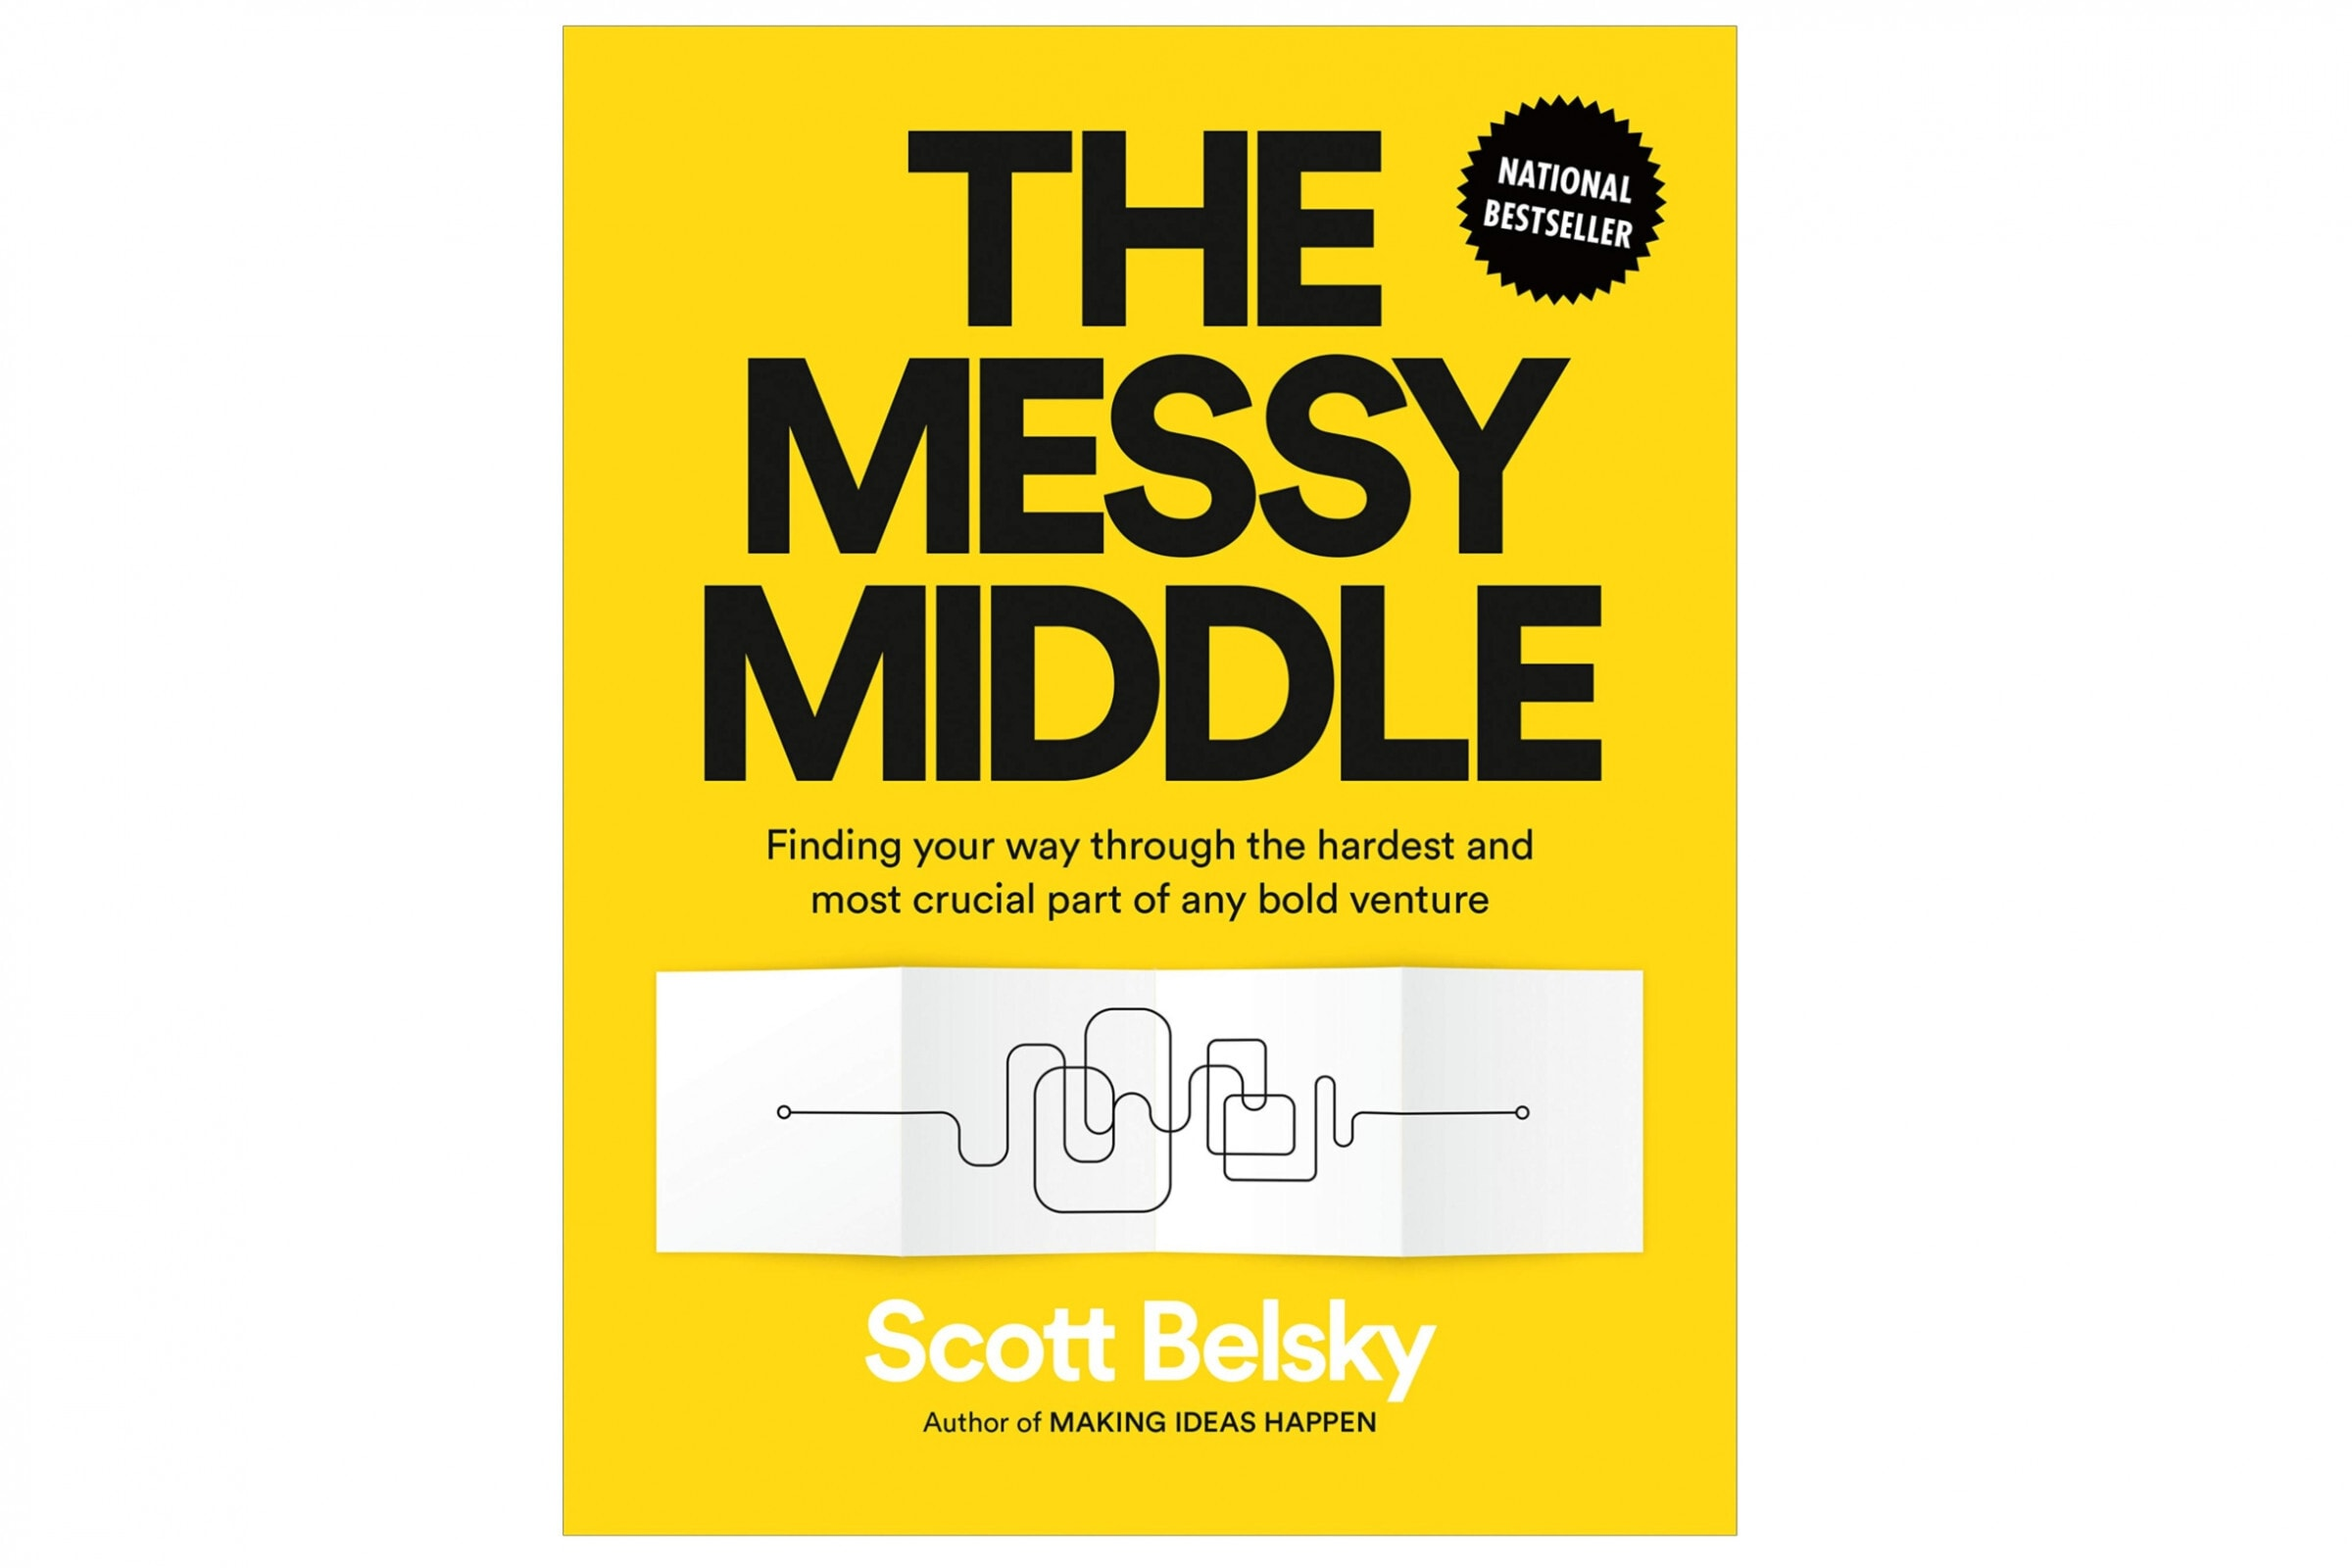 Books to read to kick your New Year off right 'The Messy Middle'